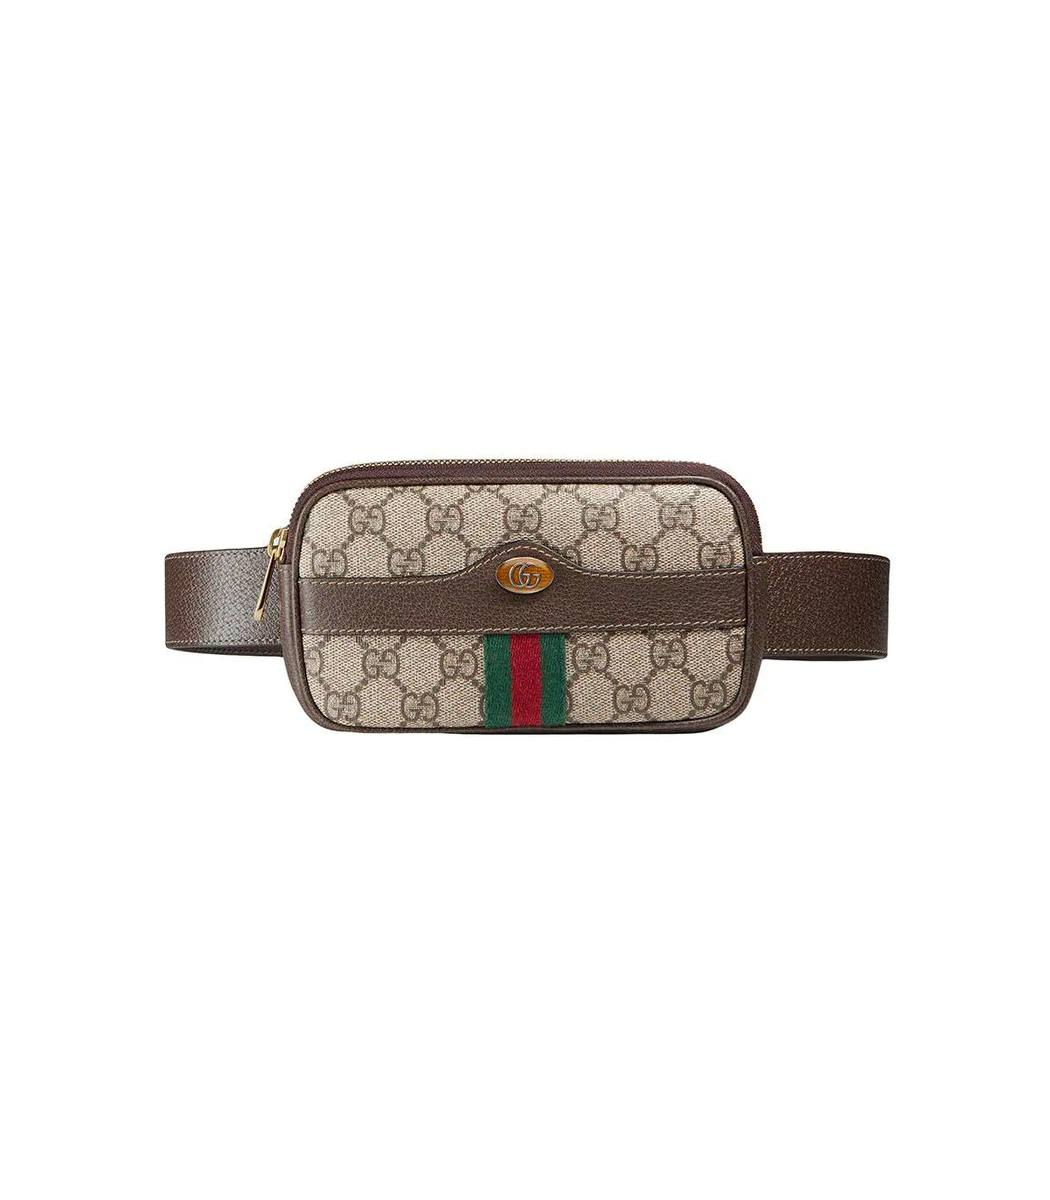 20a971a9cbab Home / Gucci / Ophidia GG Supreme belted iPhone case. prev